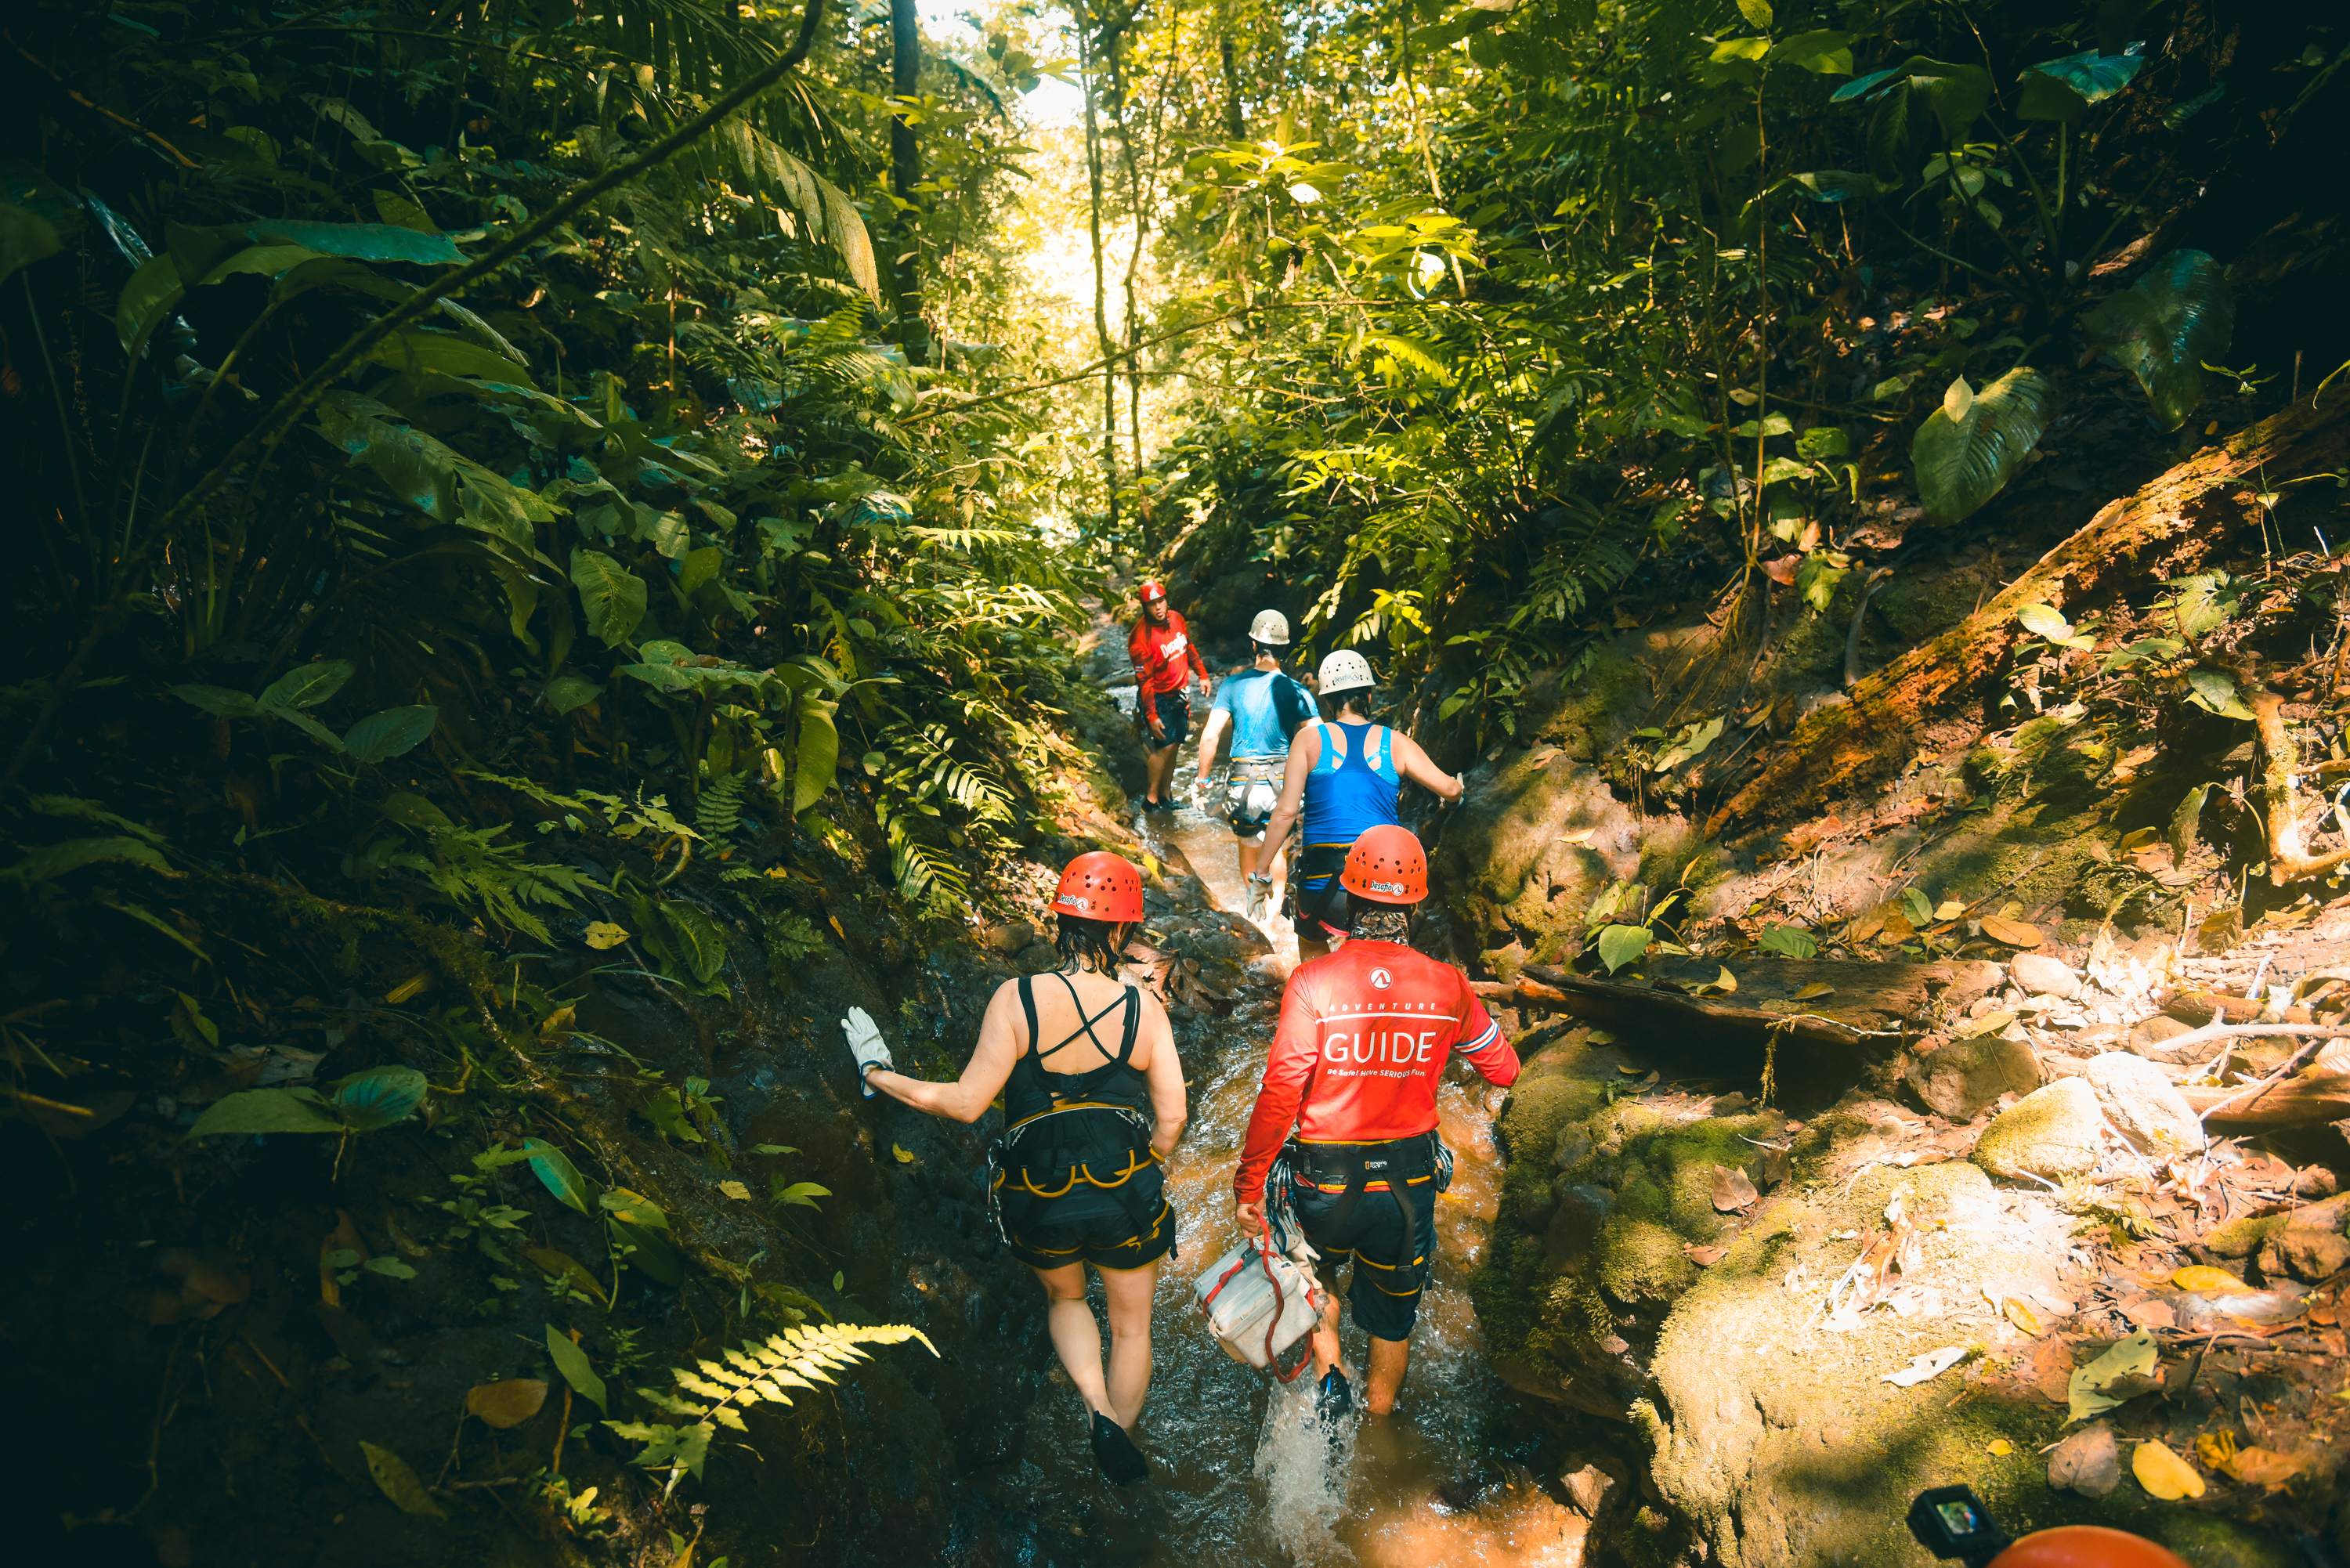 Go Hike along an amazing canyon deep in the rainforest of the Lost Canyon.